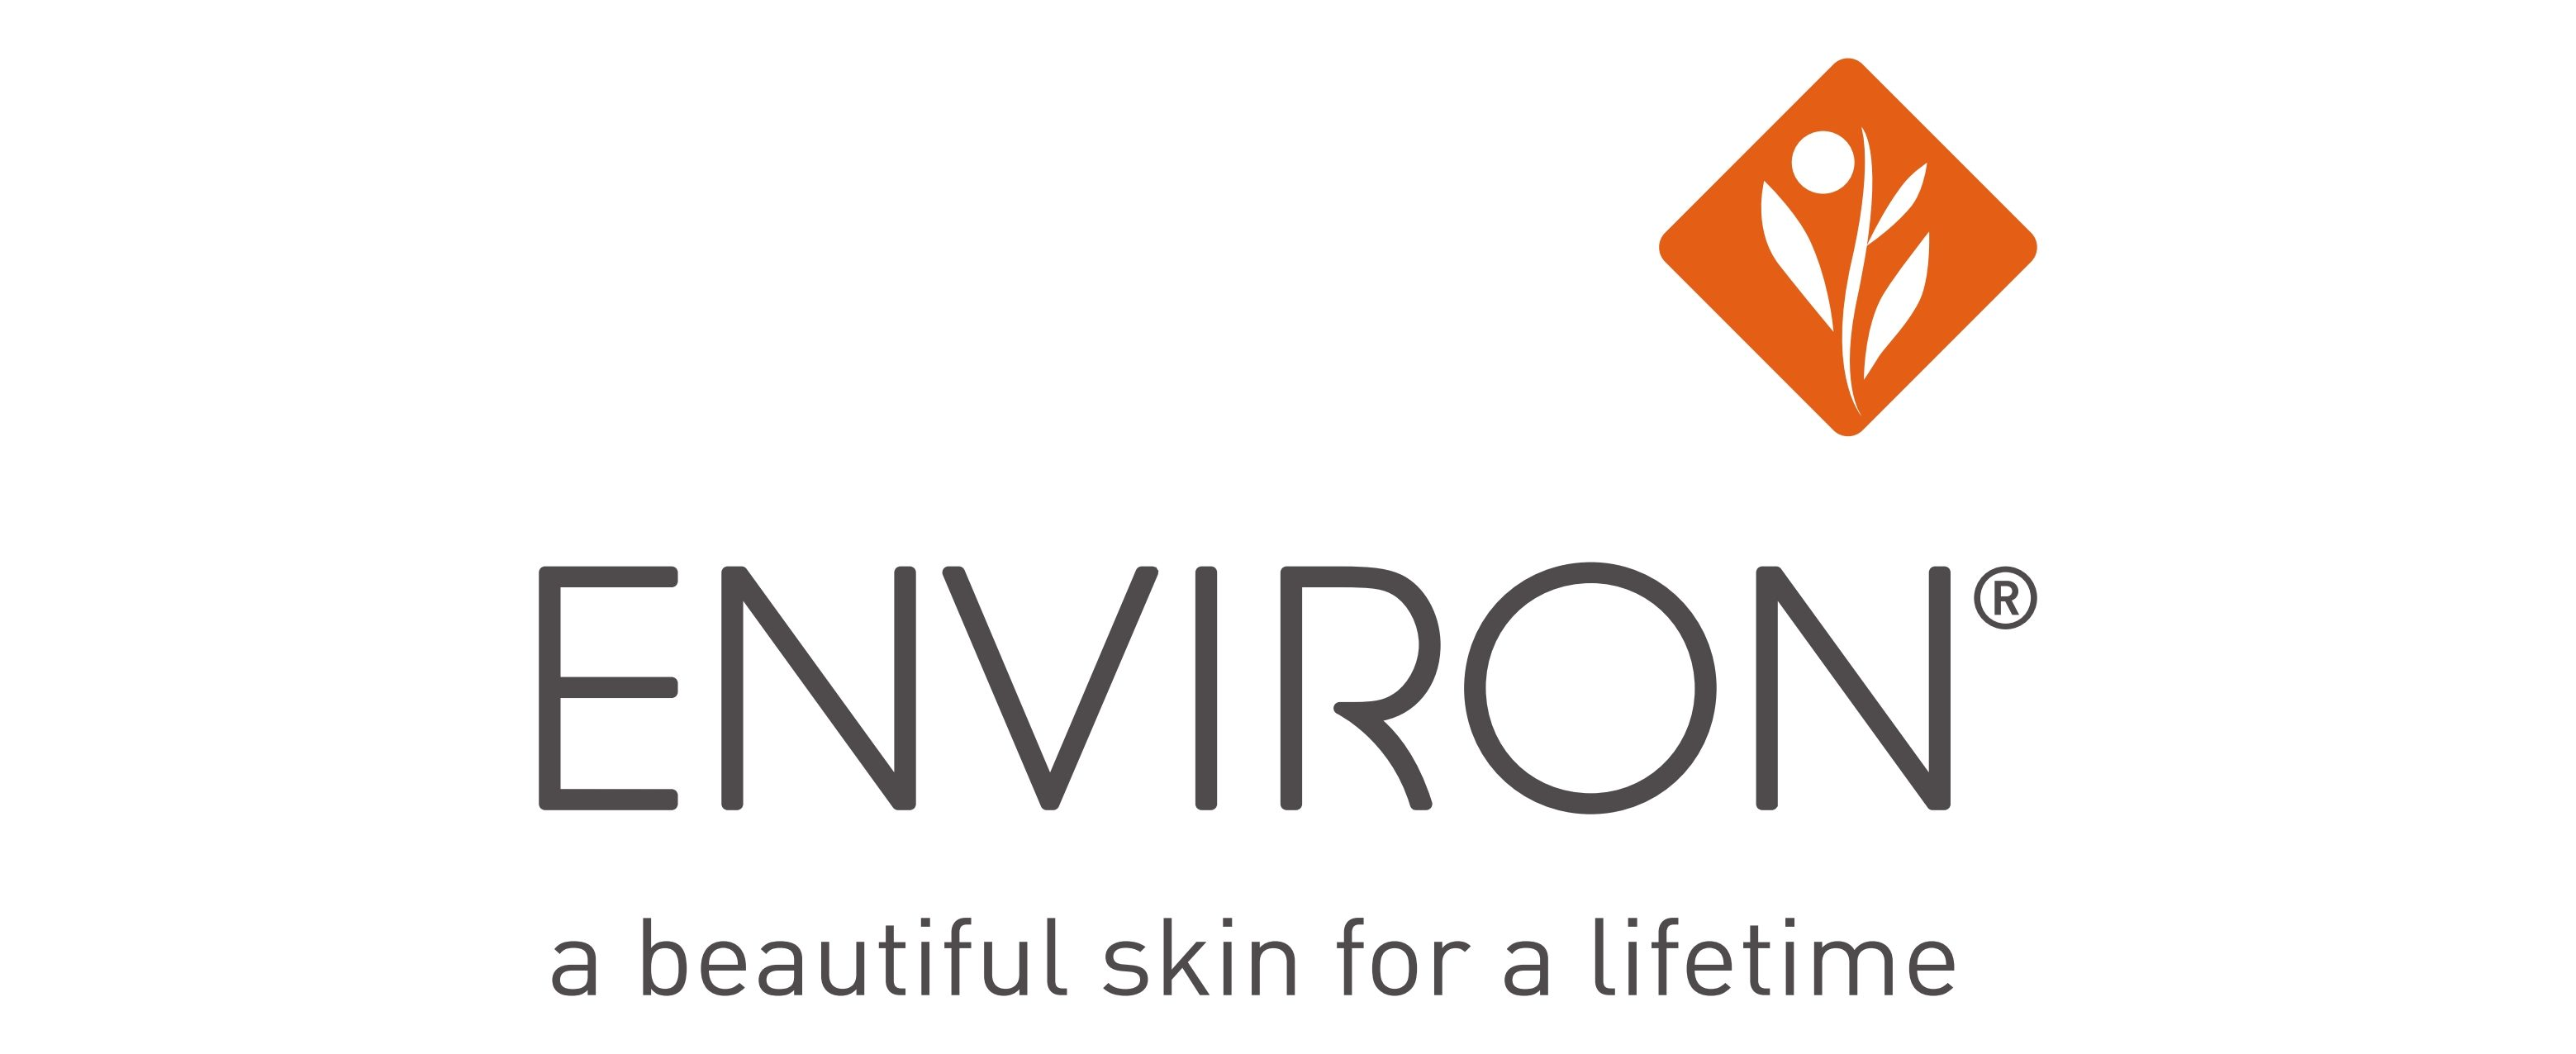 ENVIRON LOGO a beautiful skin for a life time pdf_001